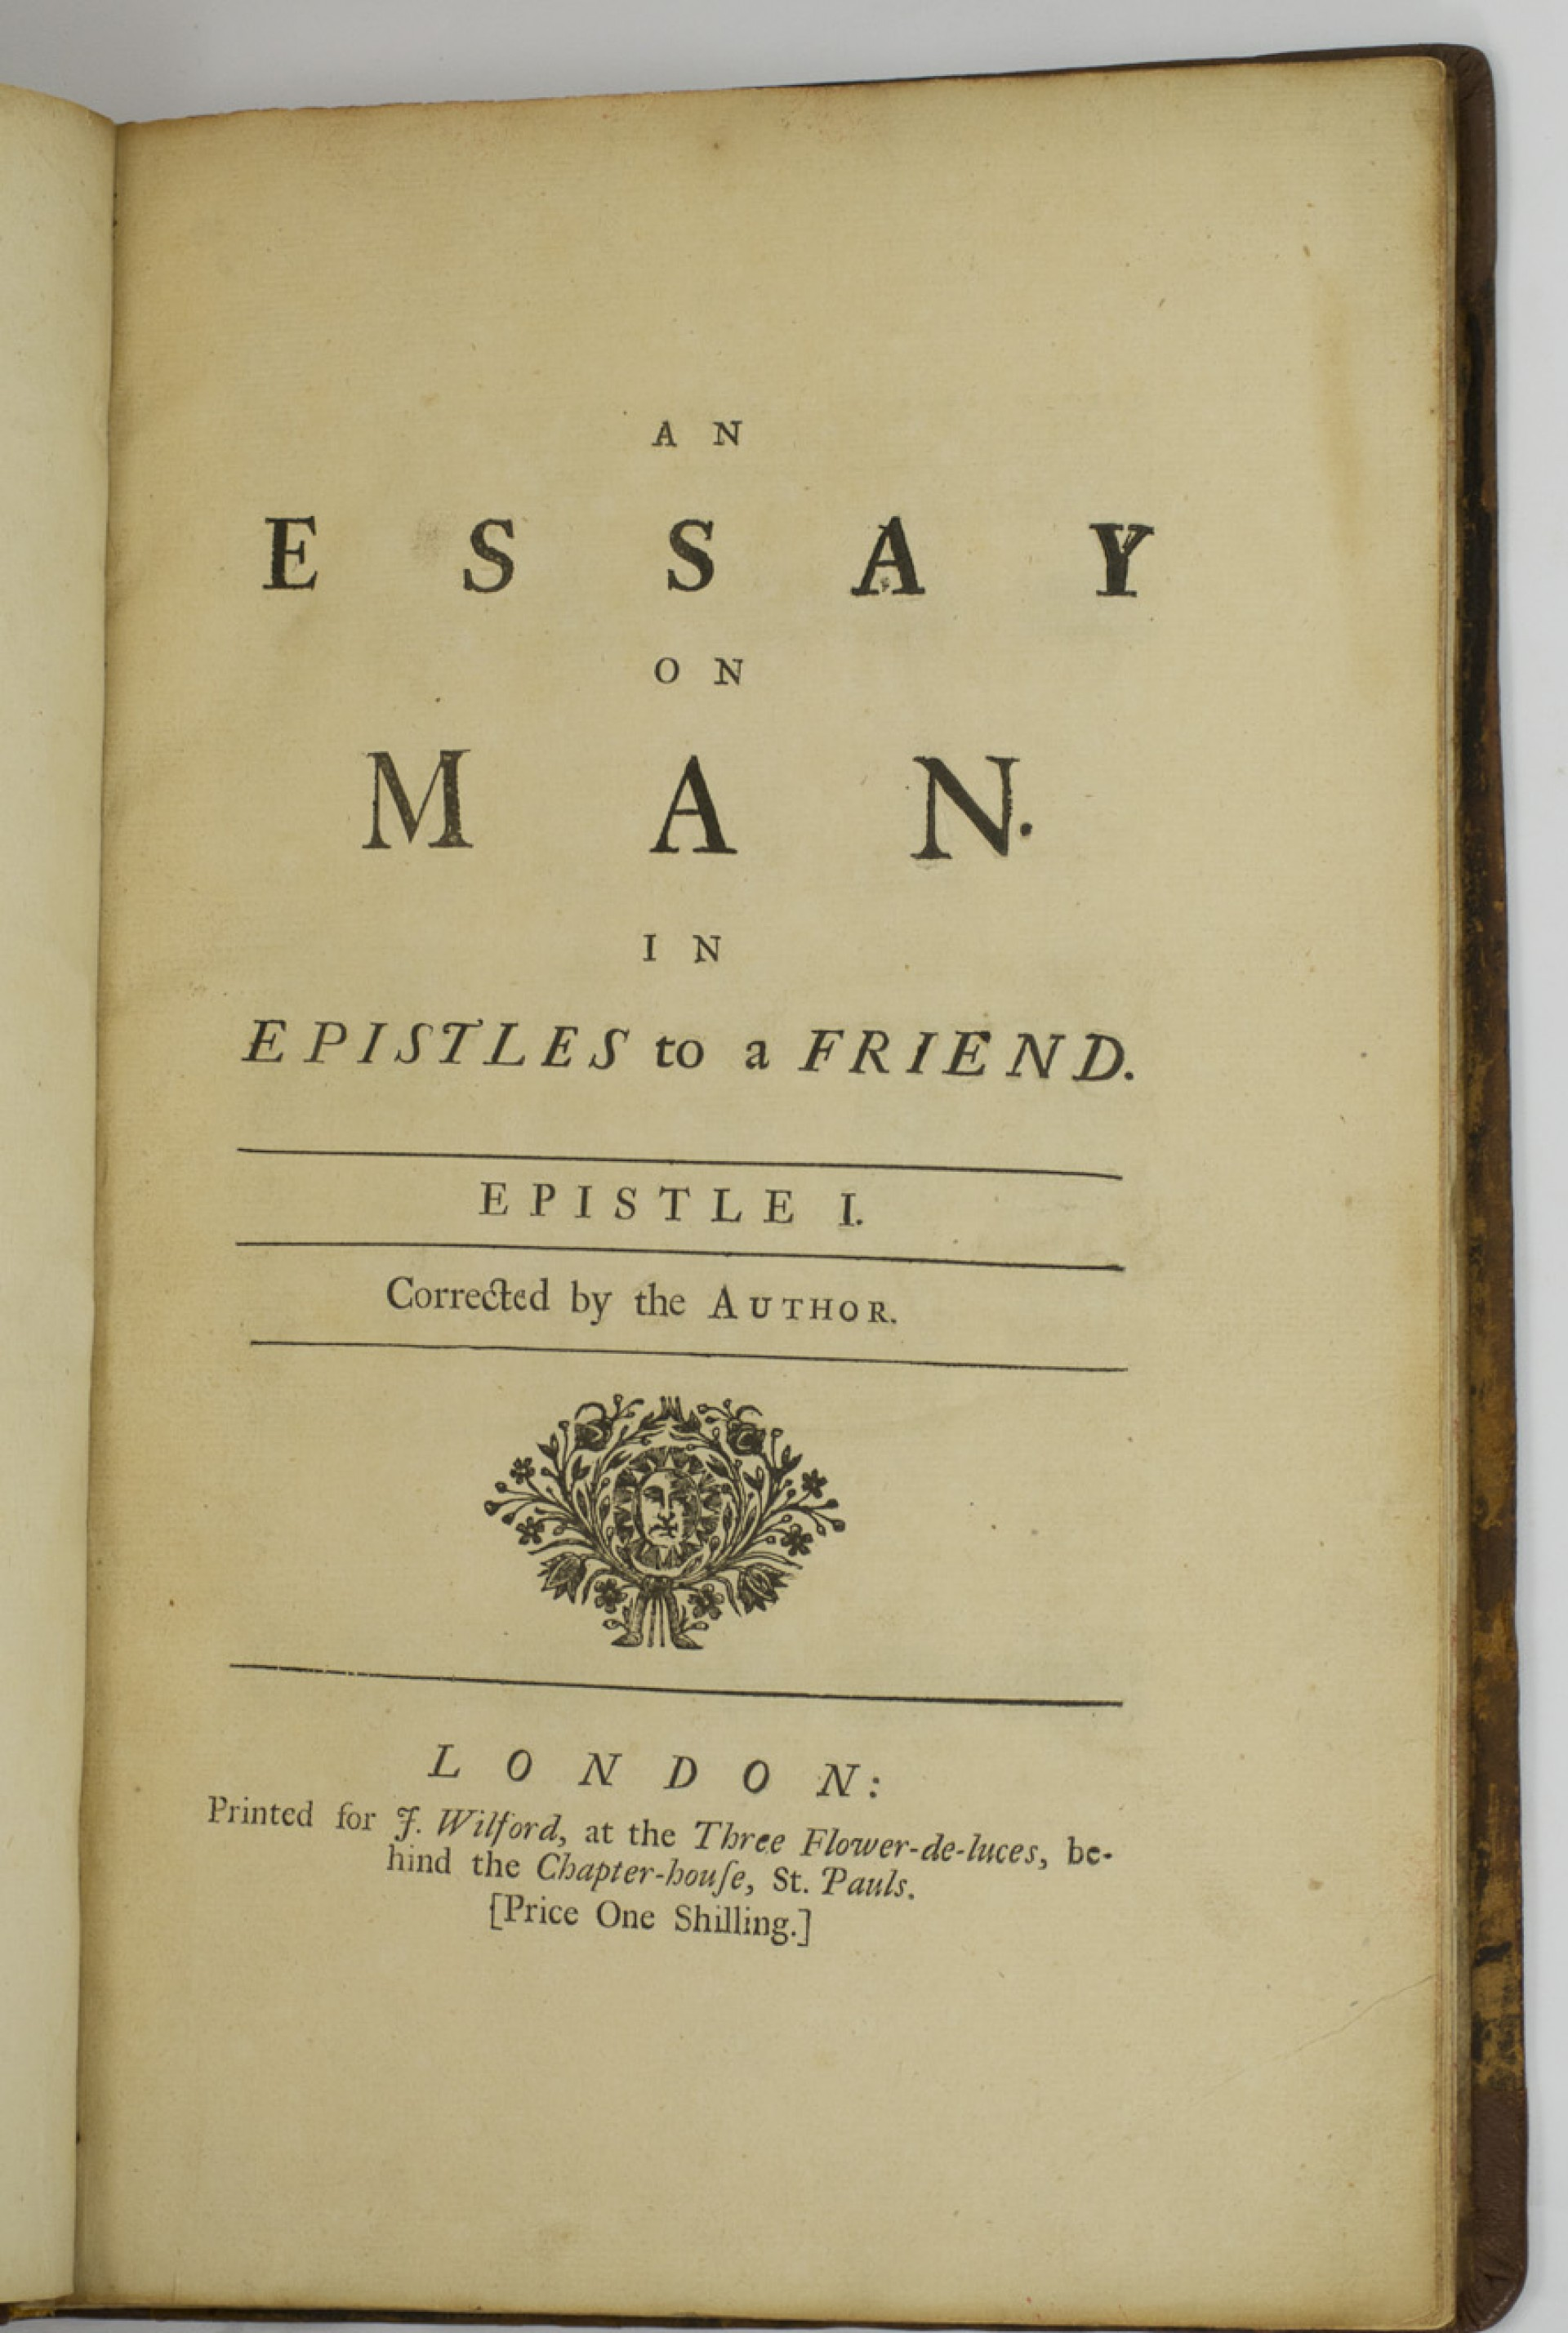 002 Essay On Man Example 65395 3 Stirring By Alexander Pope Analysis Pdf Critical Manners Reveal Character 1920